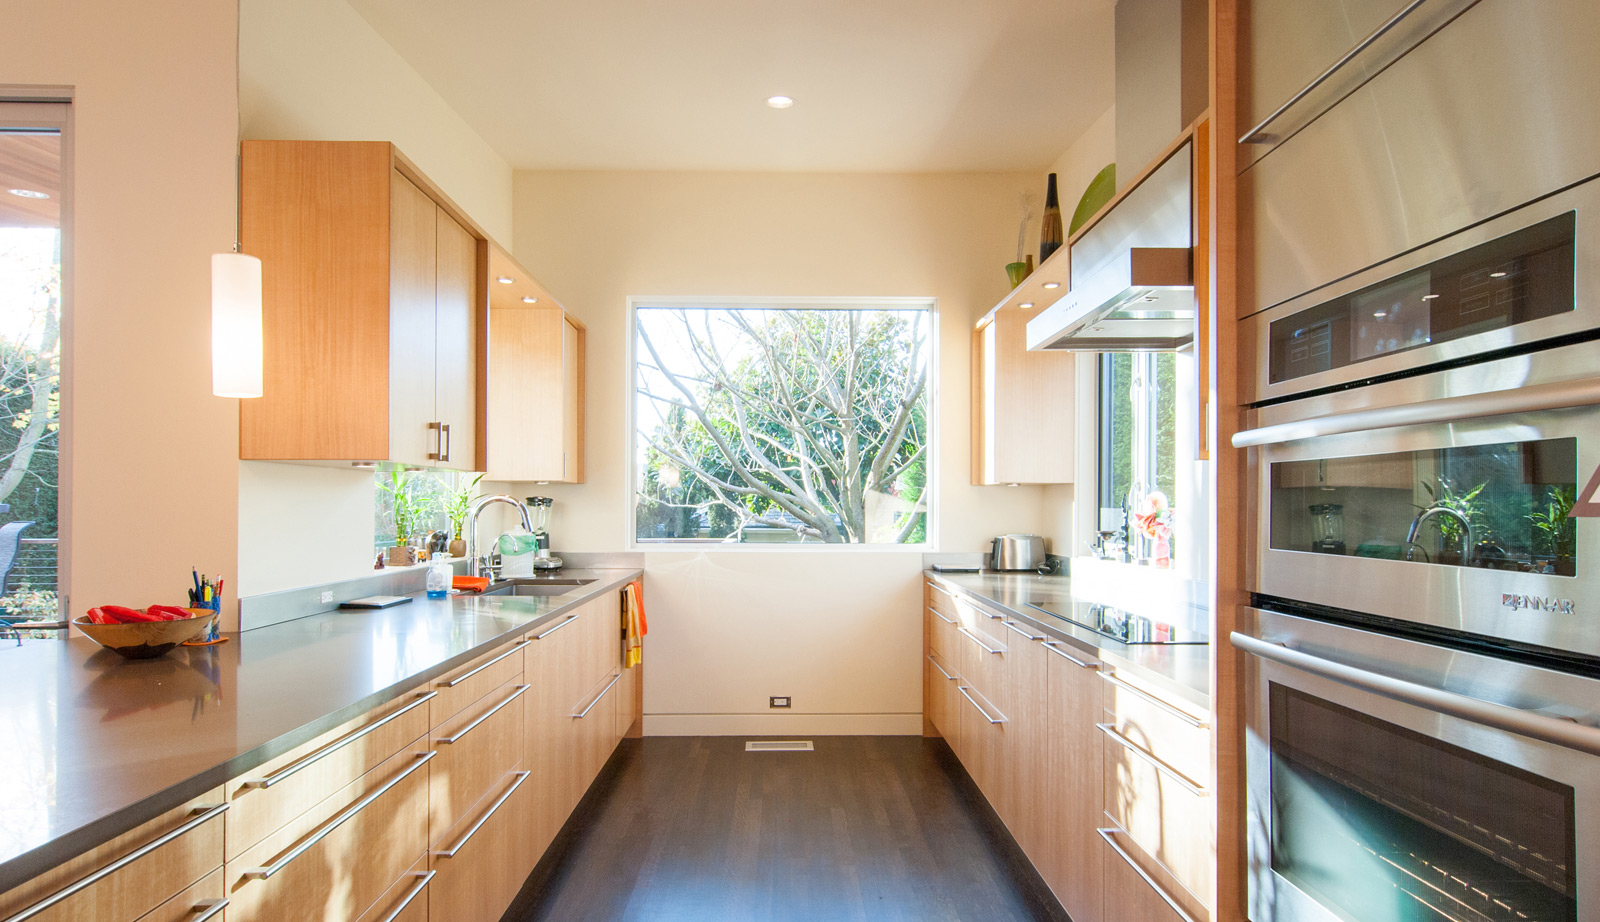 Merveilleux BUILD LLC Queen Anne Residence Kitchen 1